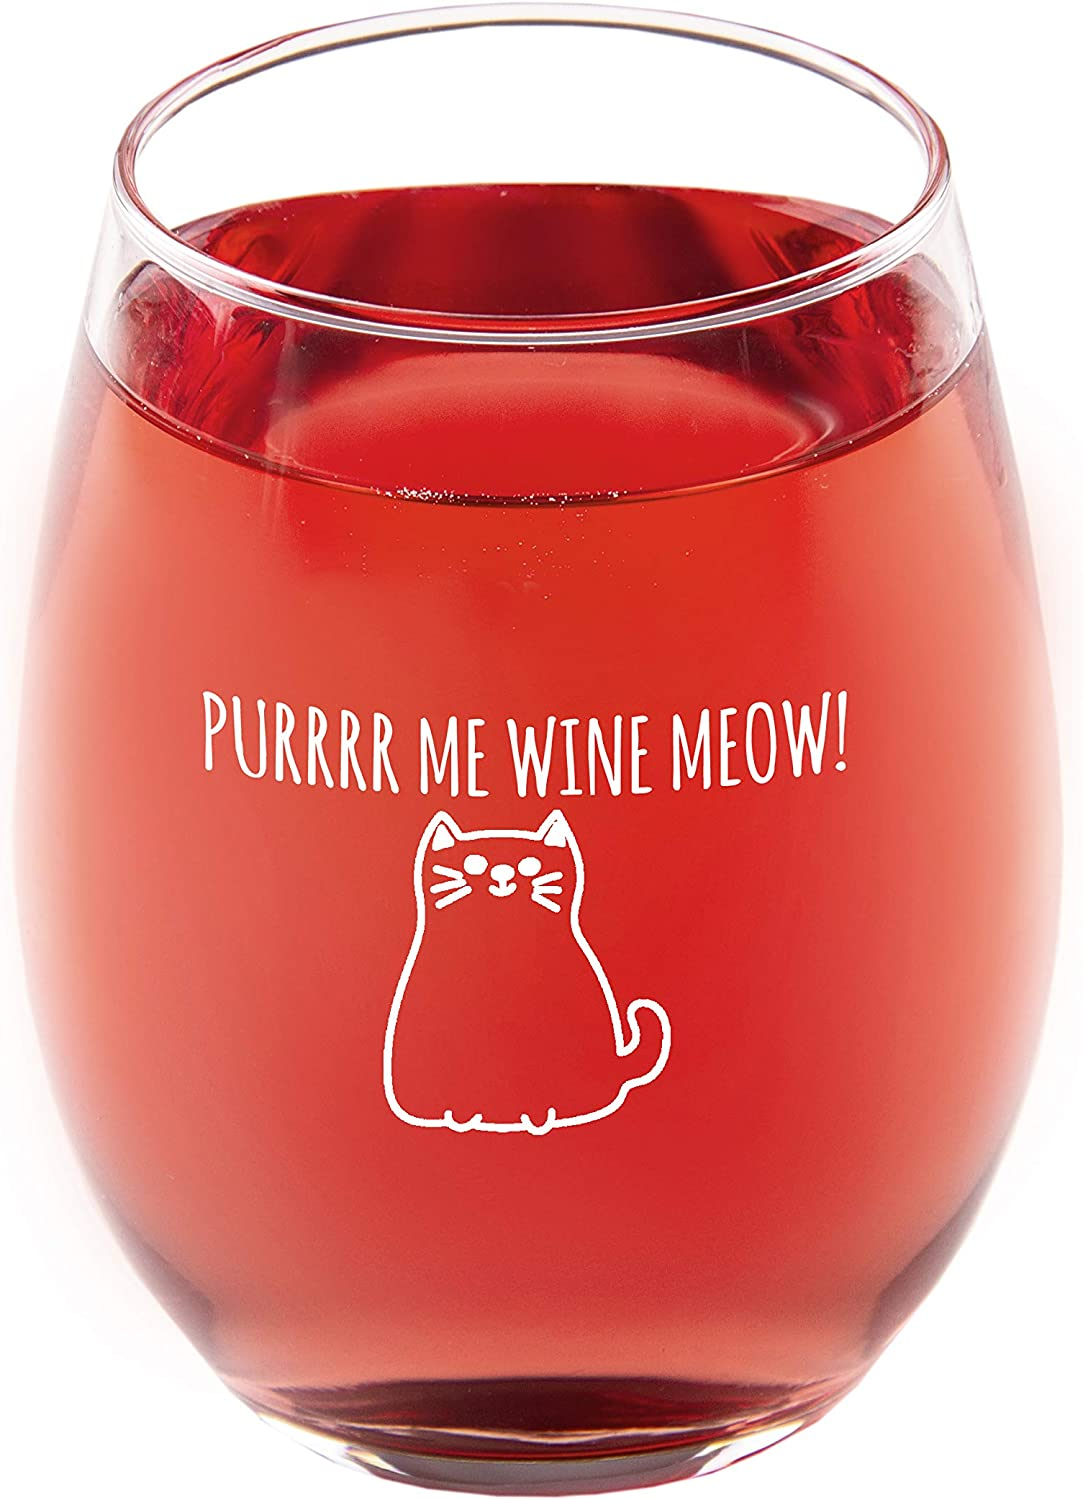 PURRRR ME WINE MEOW! 15oz. Novelty Cat Stemless Wine Glass. Great gift for lovers of Cats and Wine. Relax with your favorite beverage and feline friends while drinking out of this adorable wine glass.